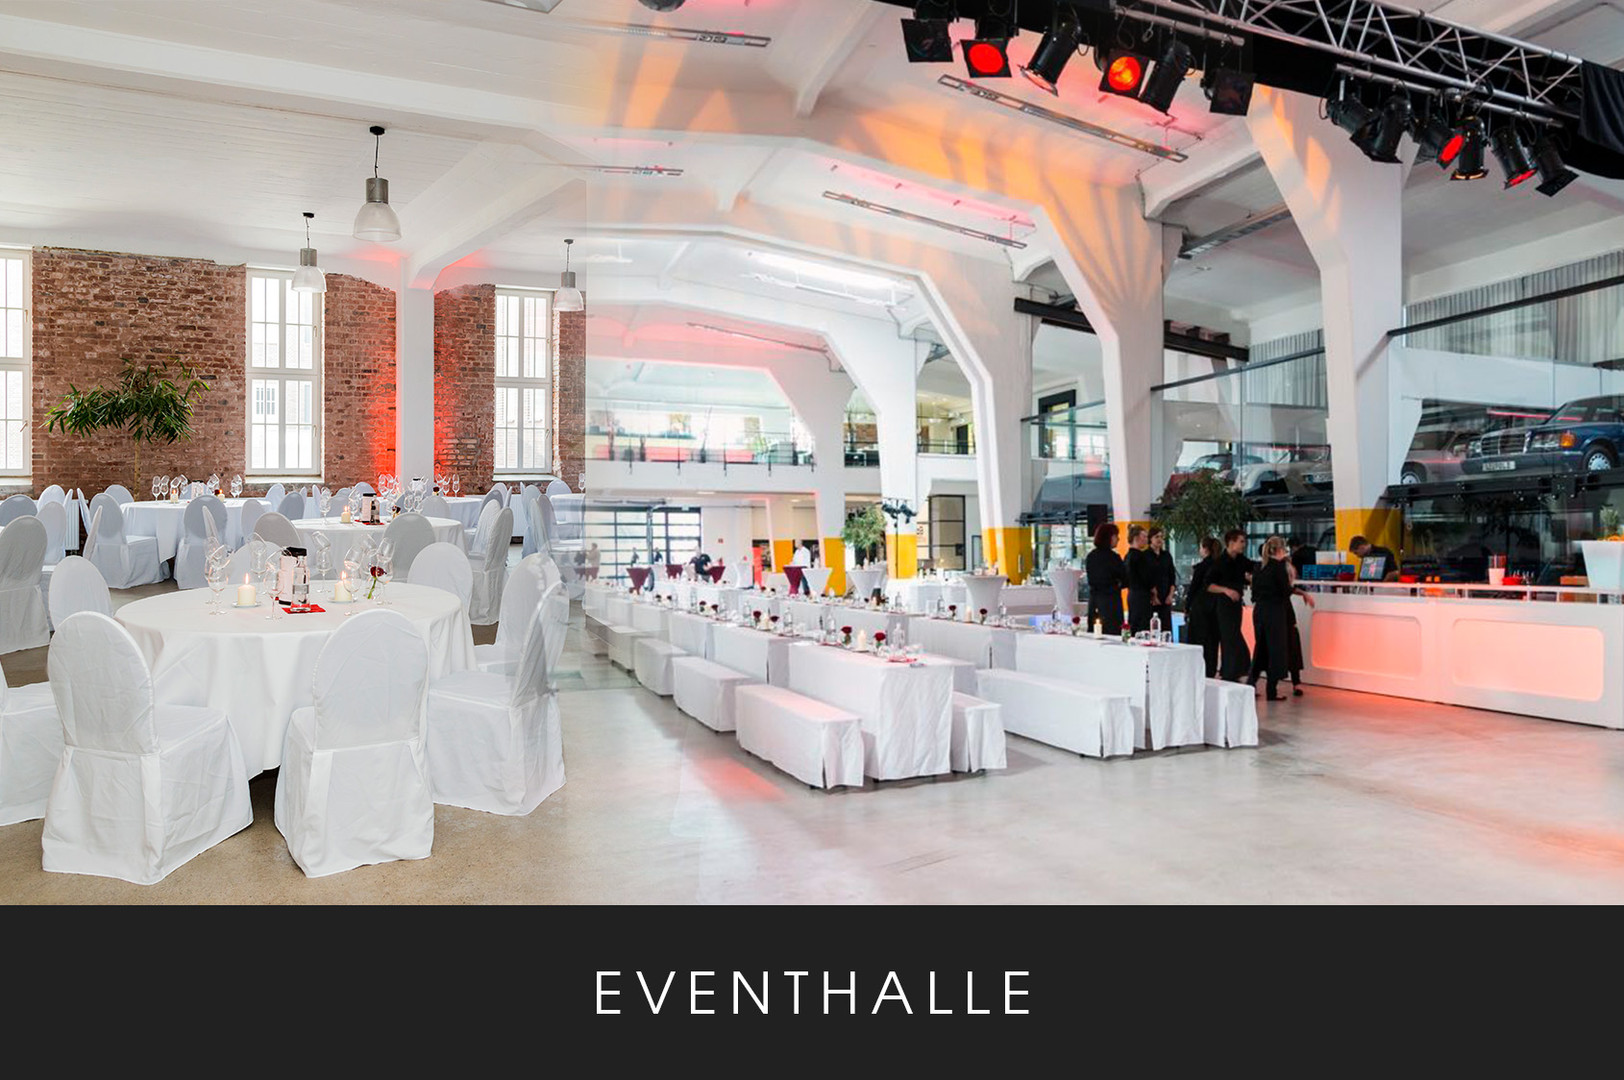 Eventhalle